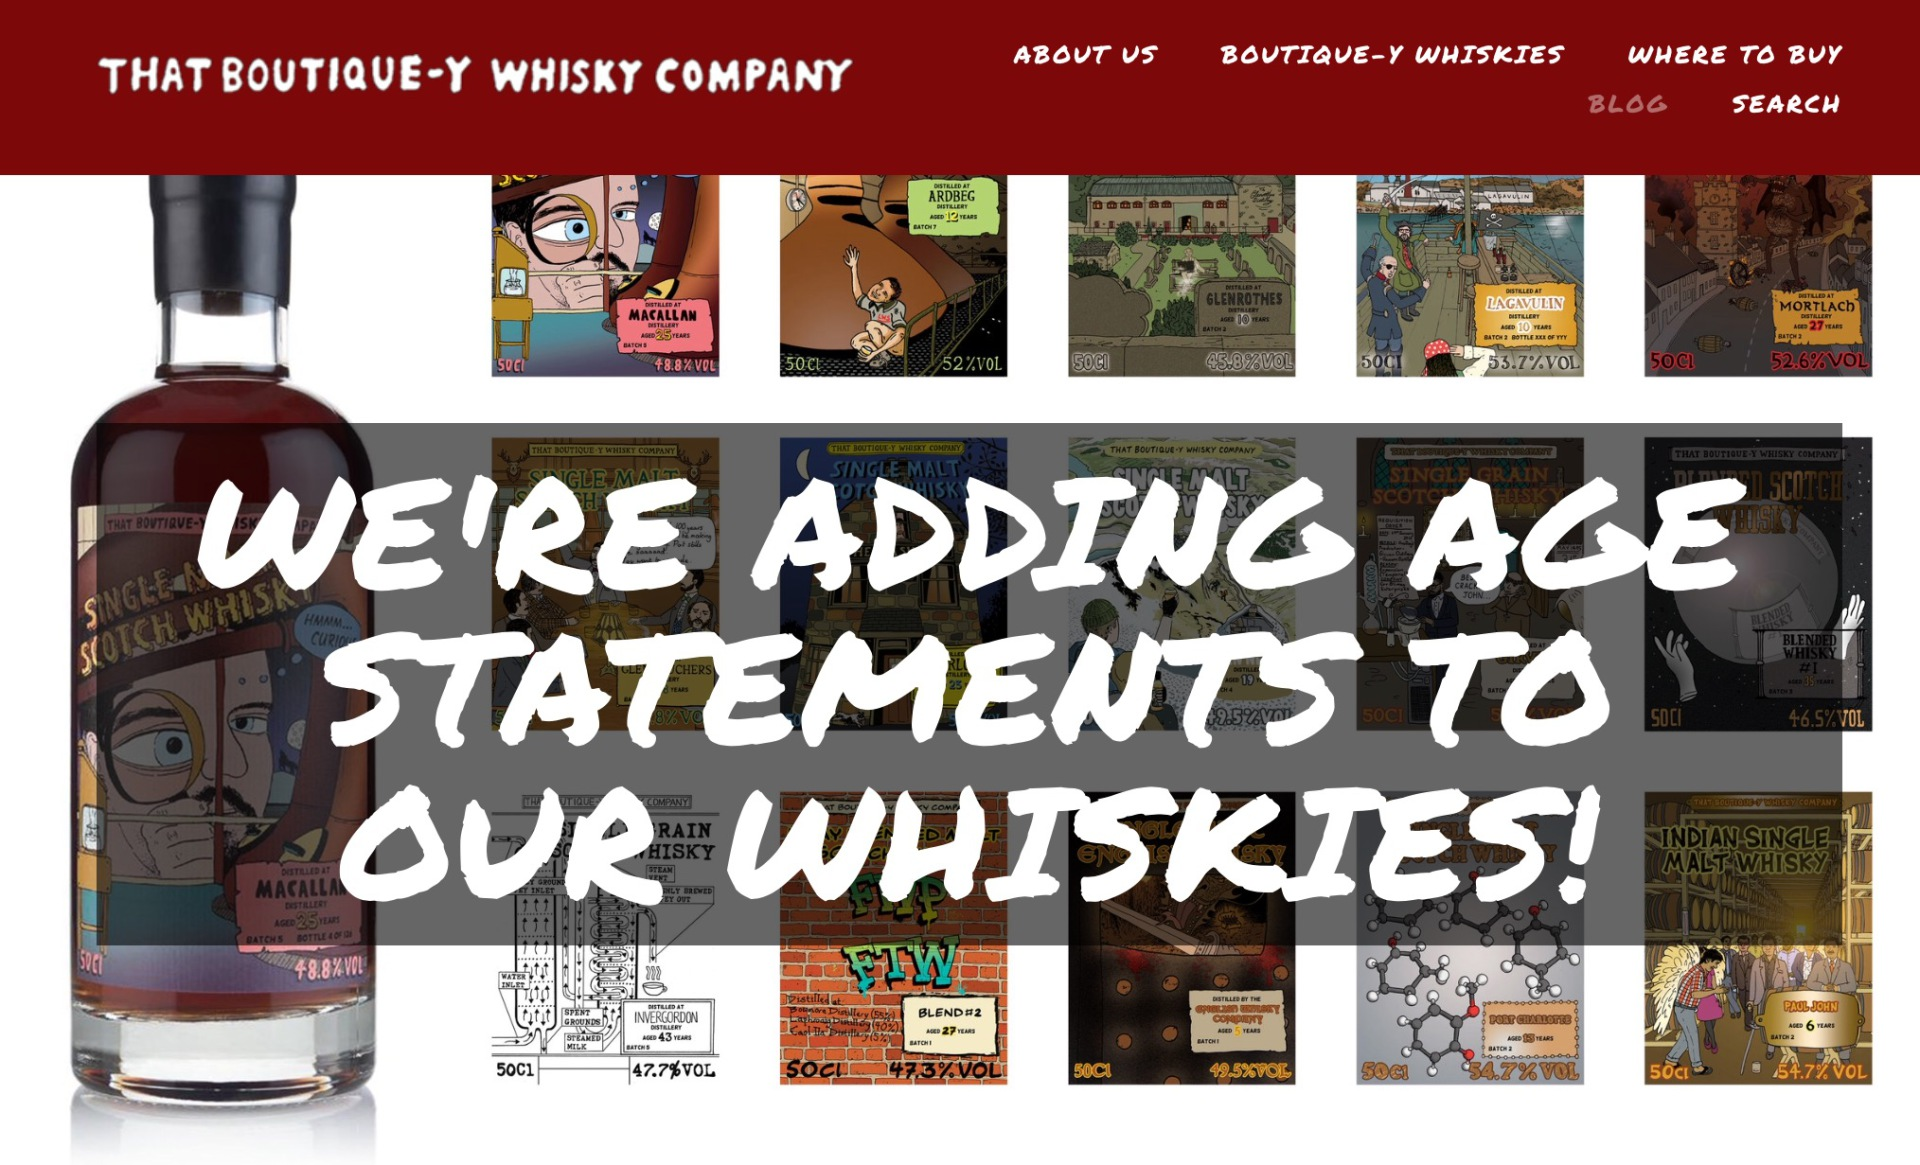 That Boutique-y whisky company NAS stance